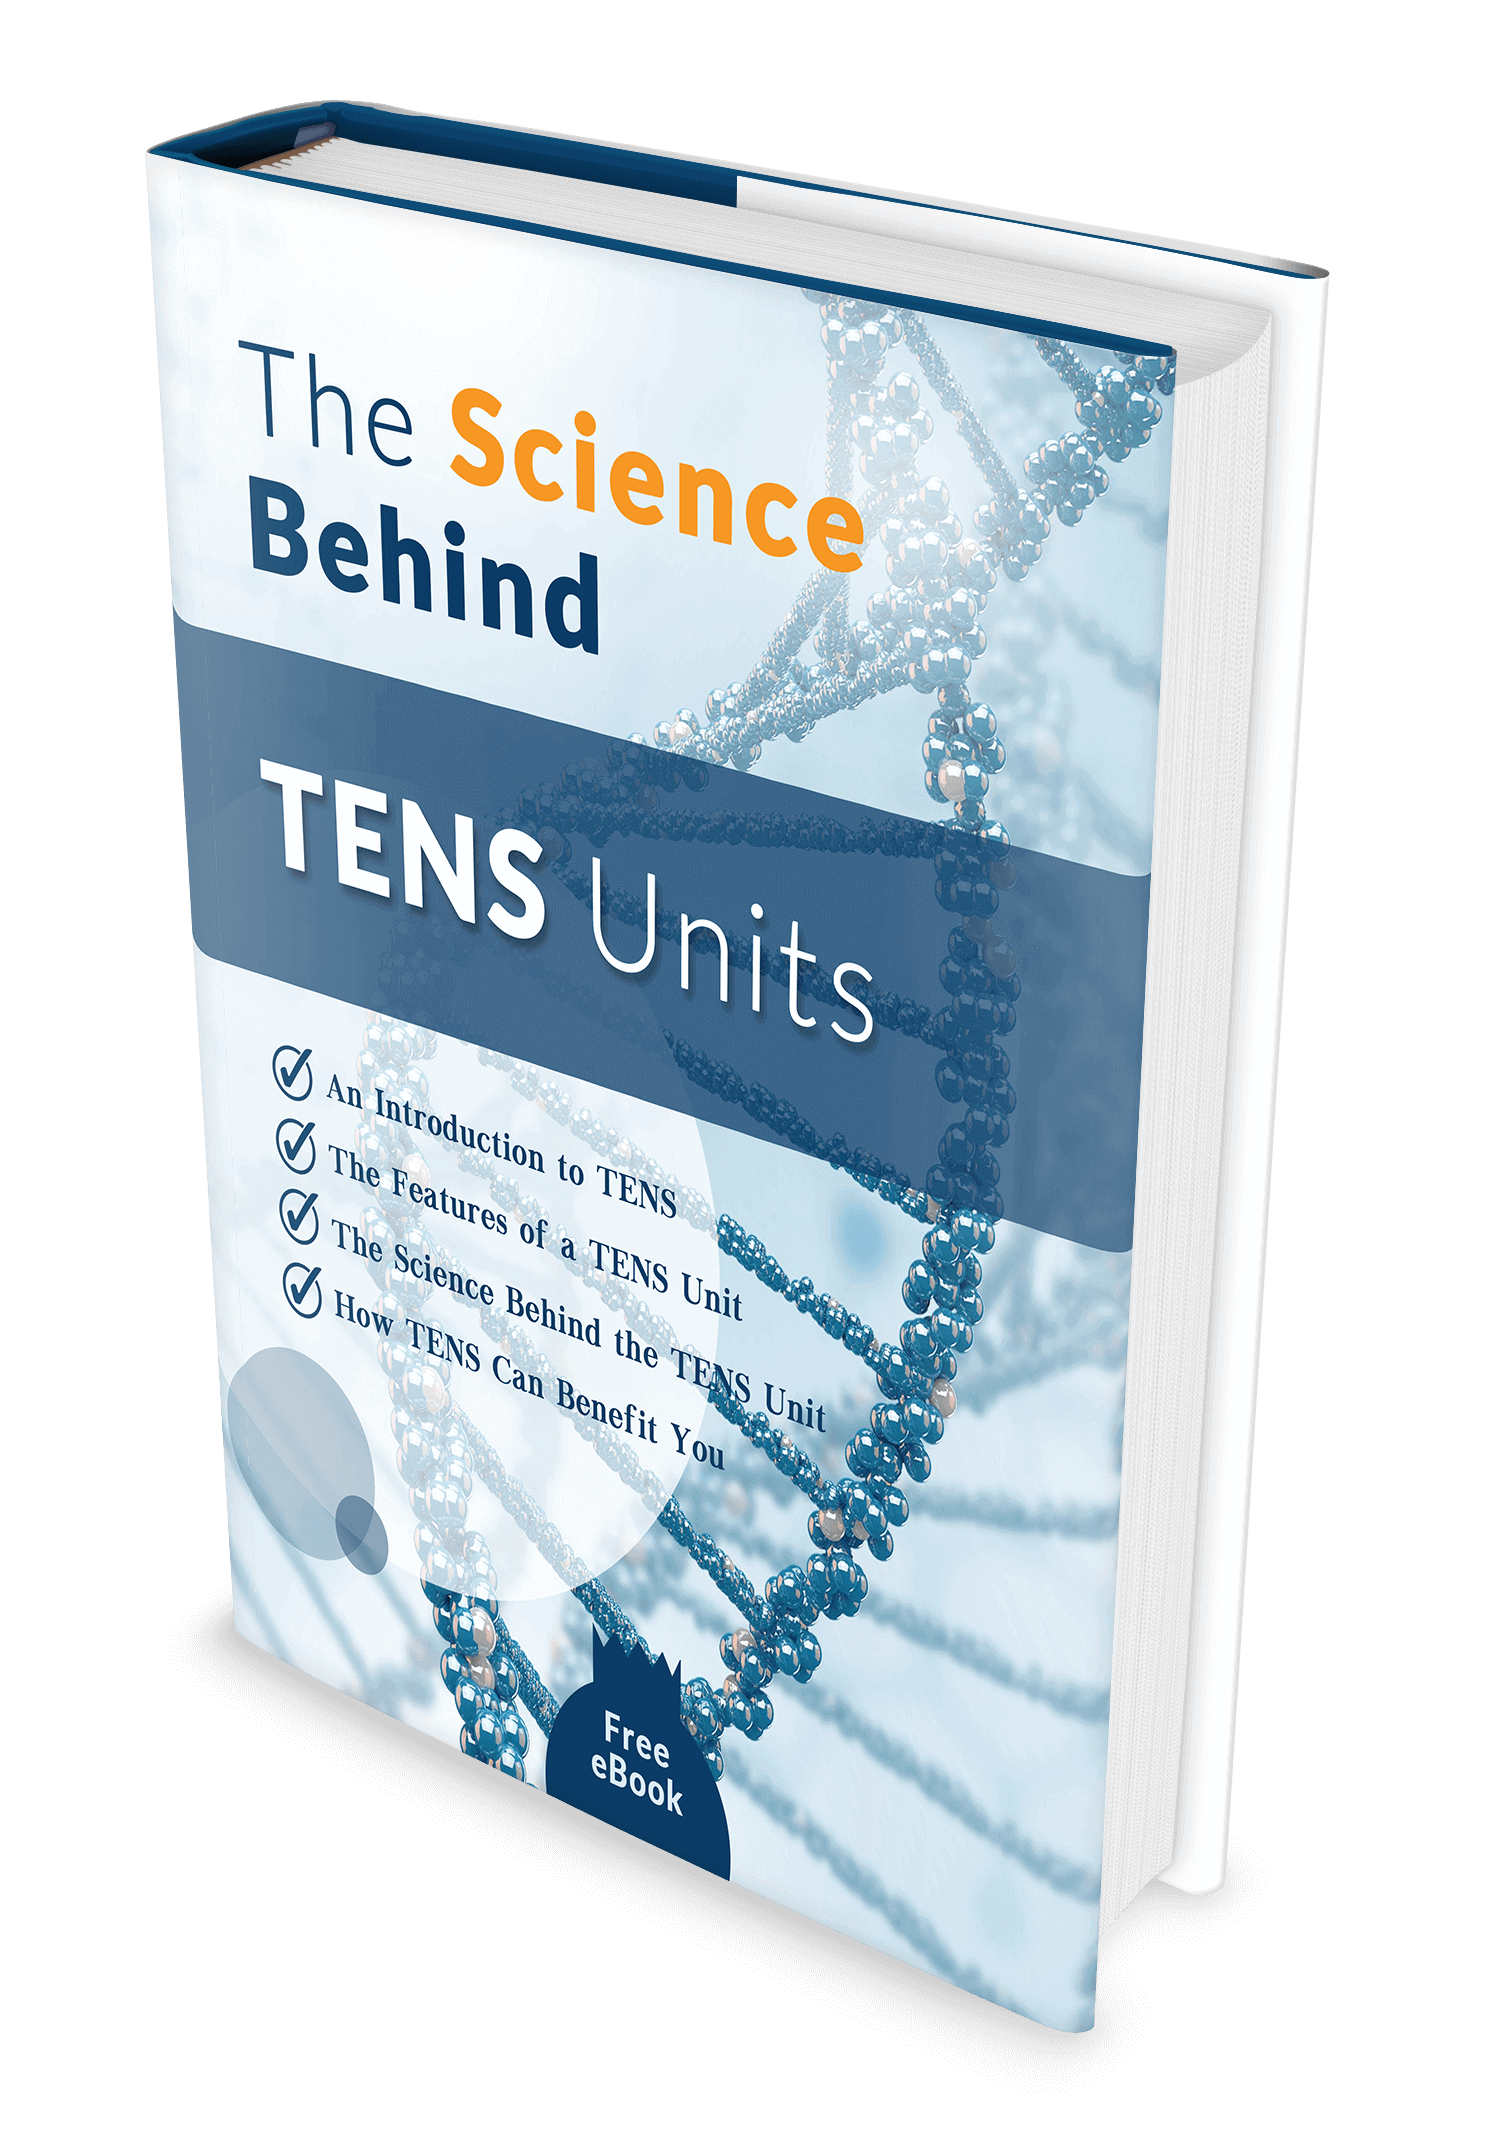 The Science Behind TENS Units